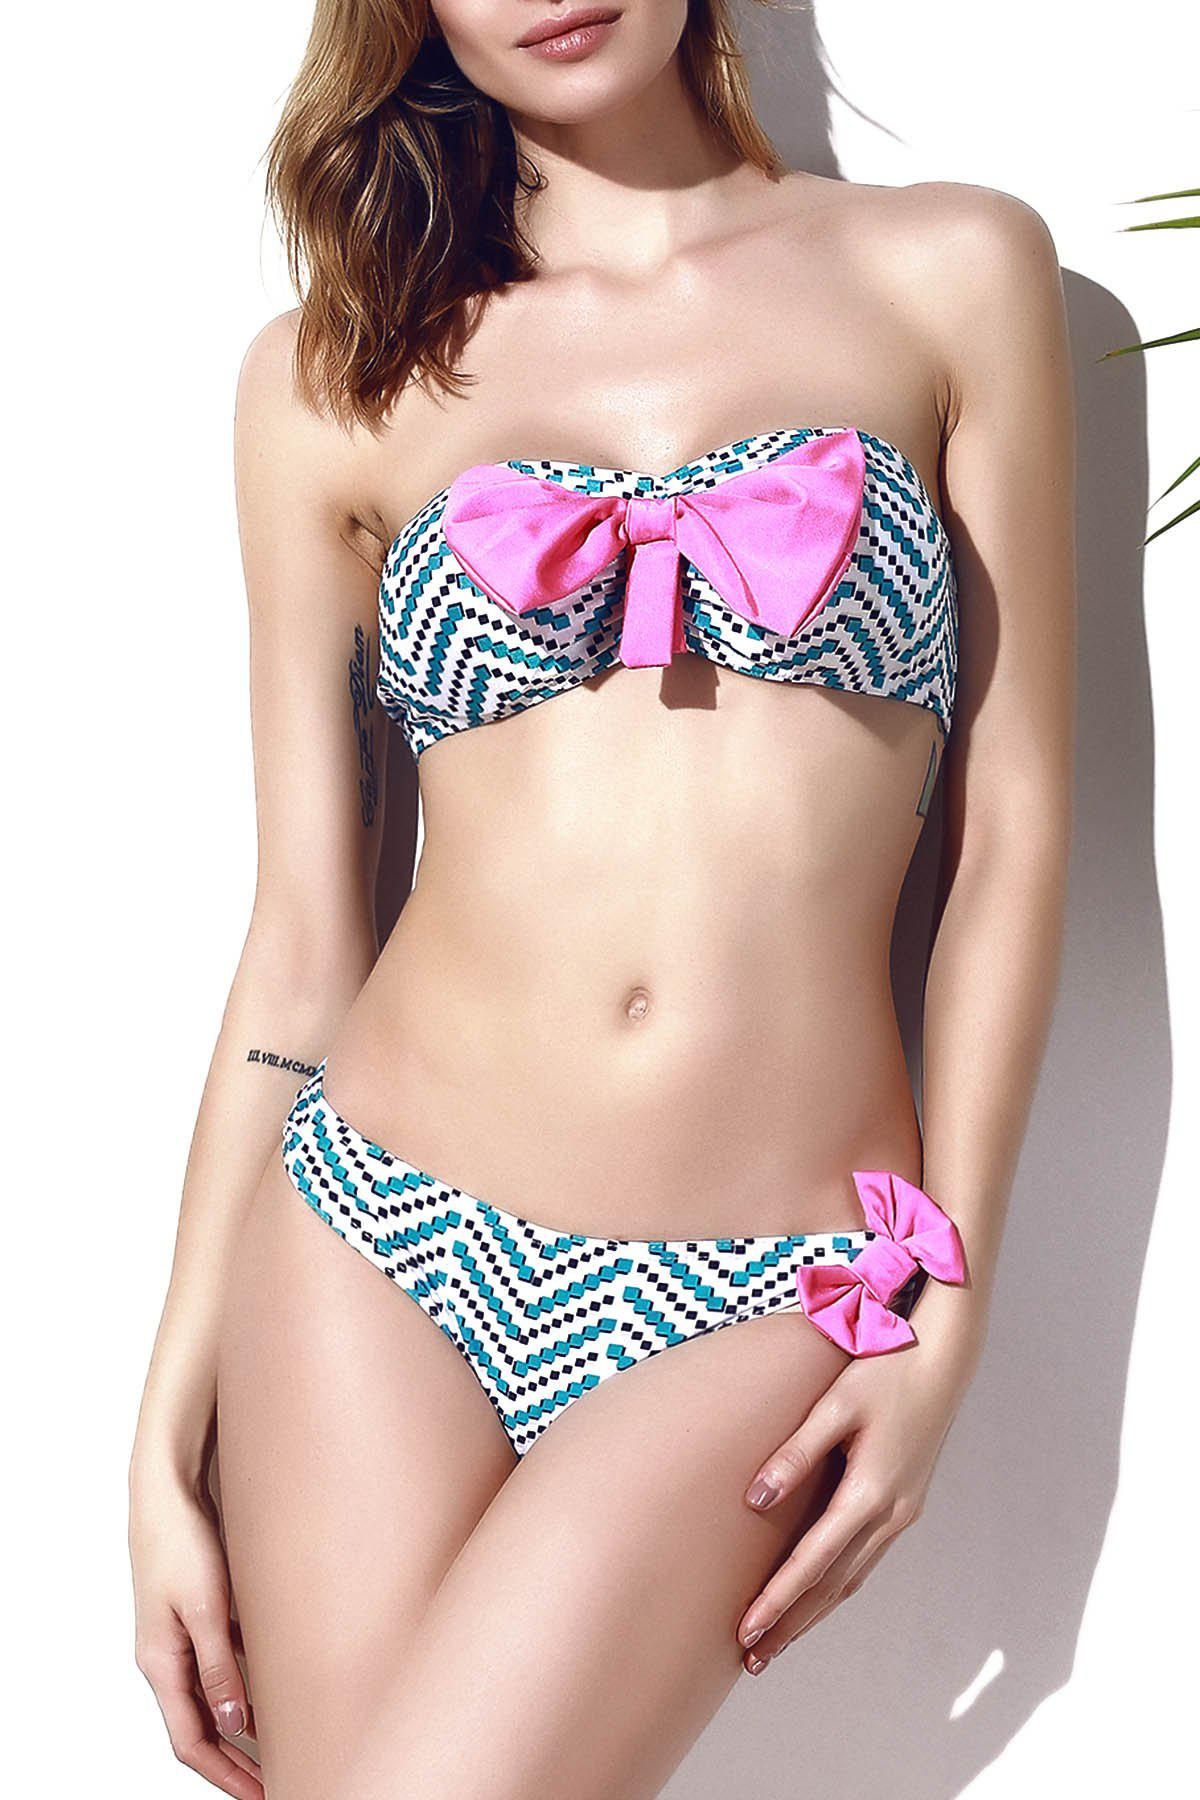 Stylish Chevron Printed Bowknot Bikini Set For Women - multicolorCOLOR XL